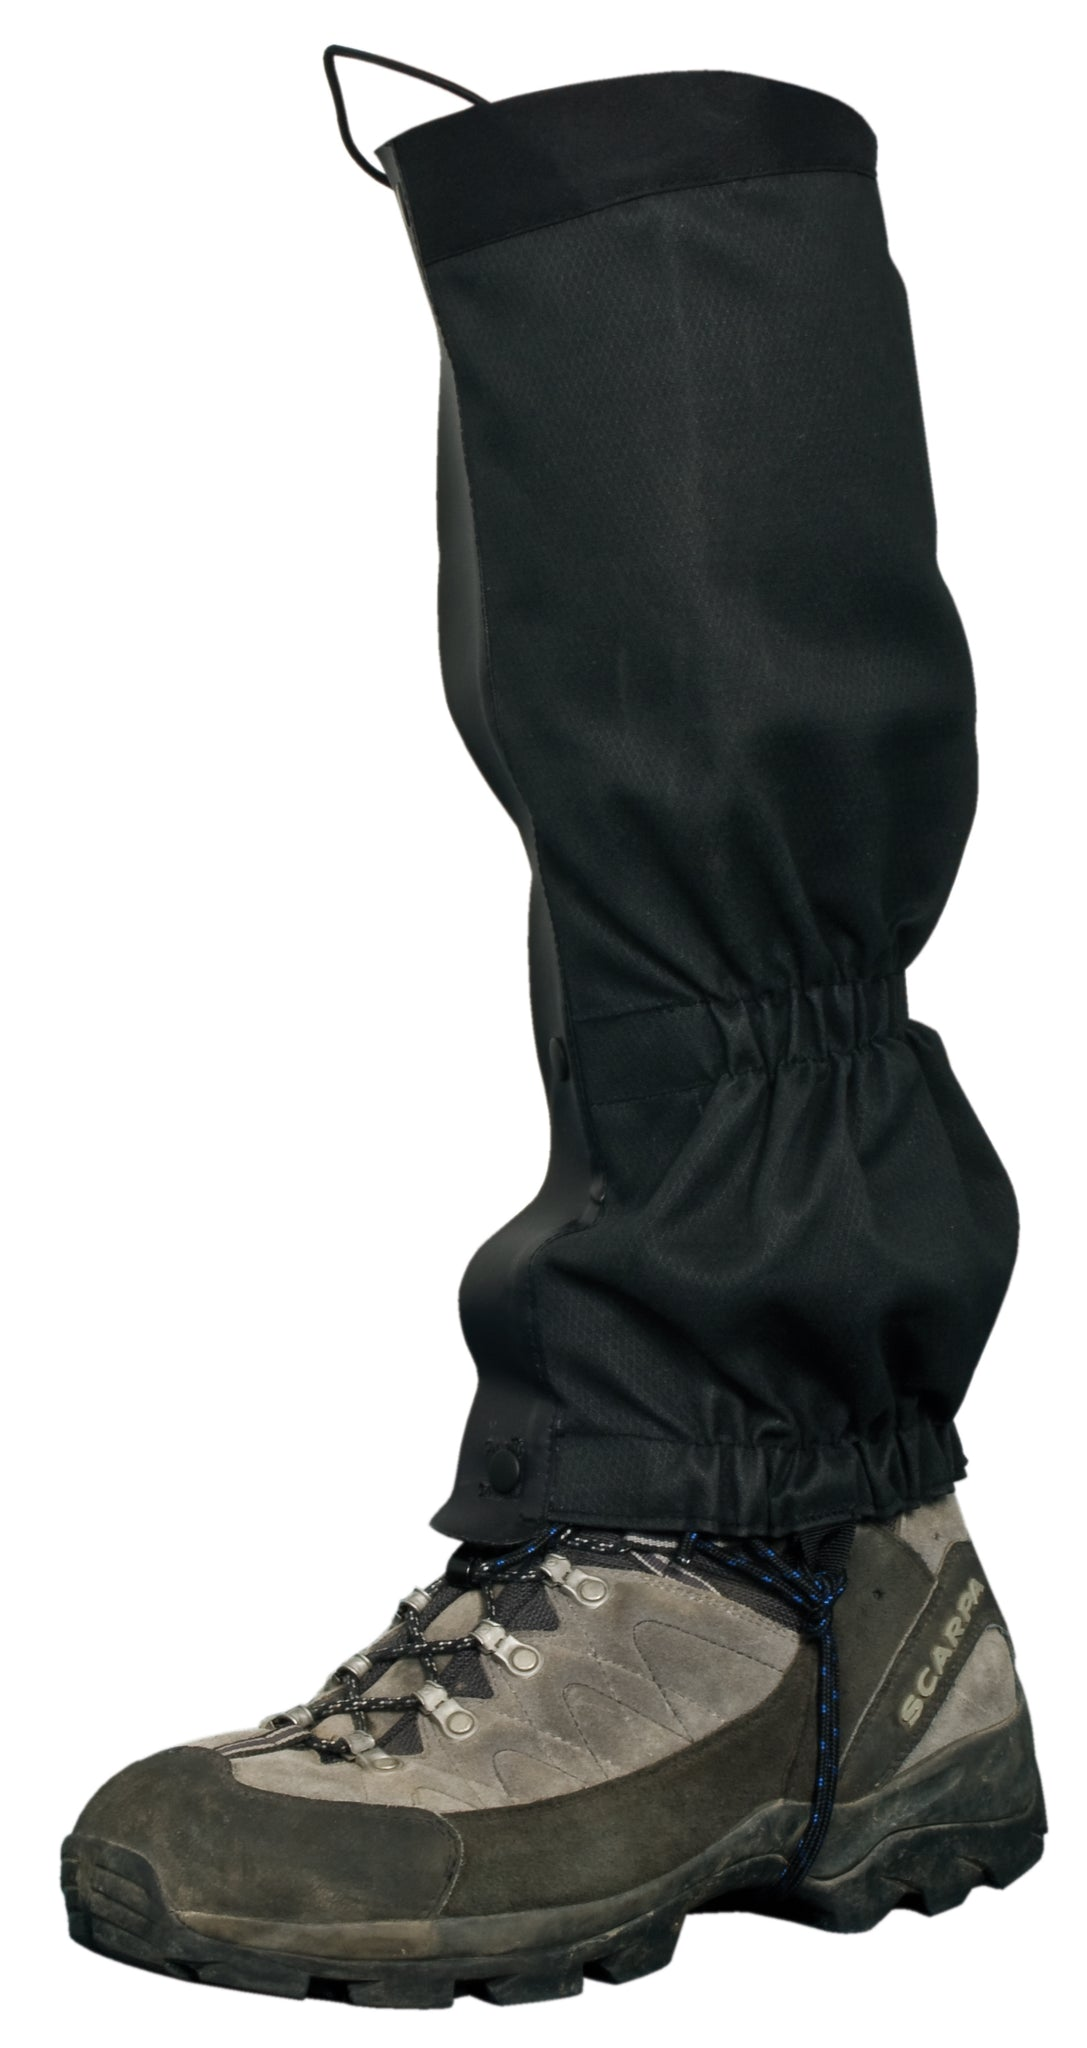 Sherpa Gaiter Long